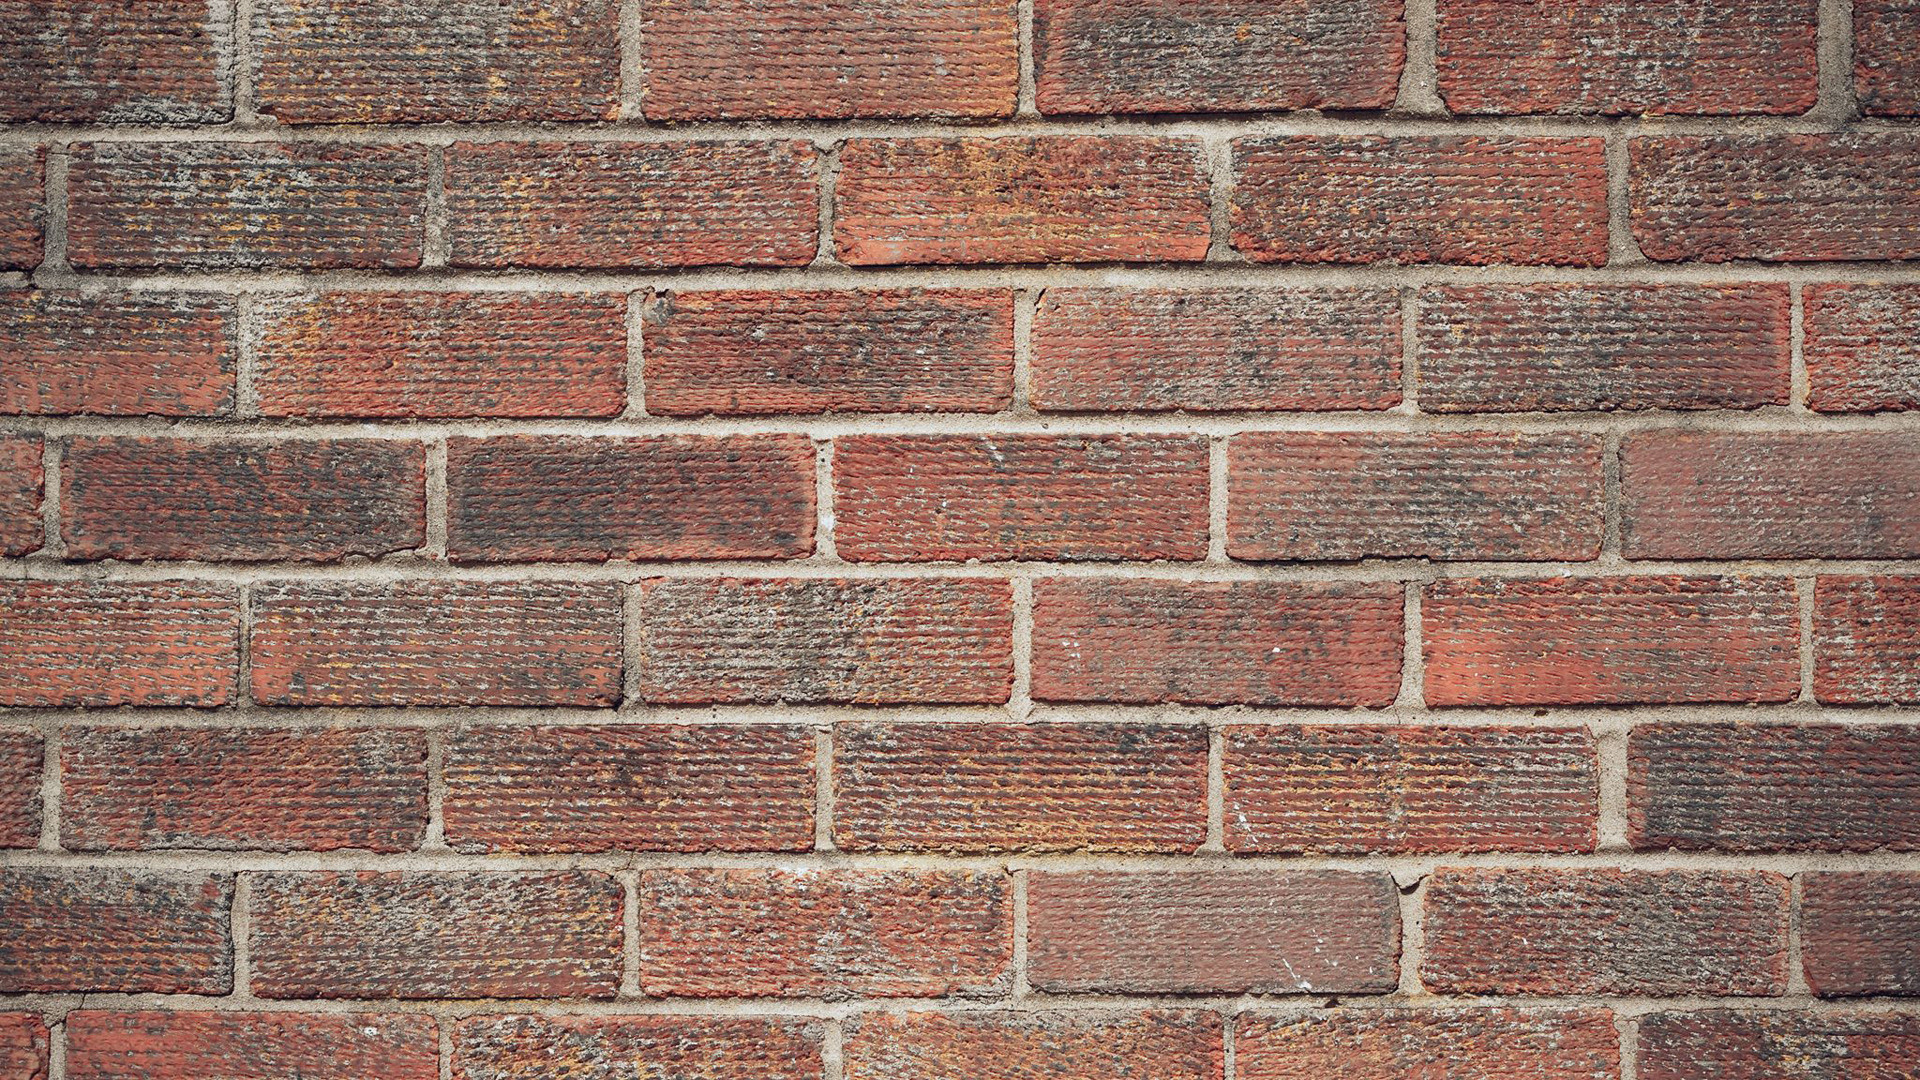 40 HD Brick Wallpapers\/Backgrounds For Free Download